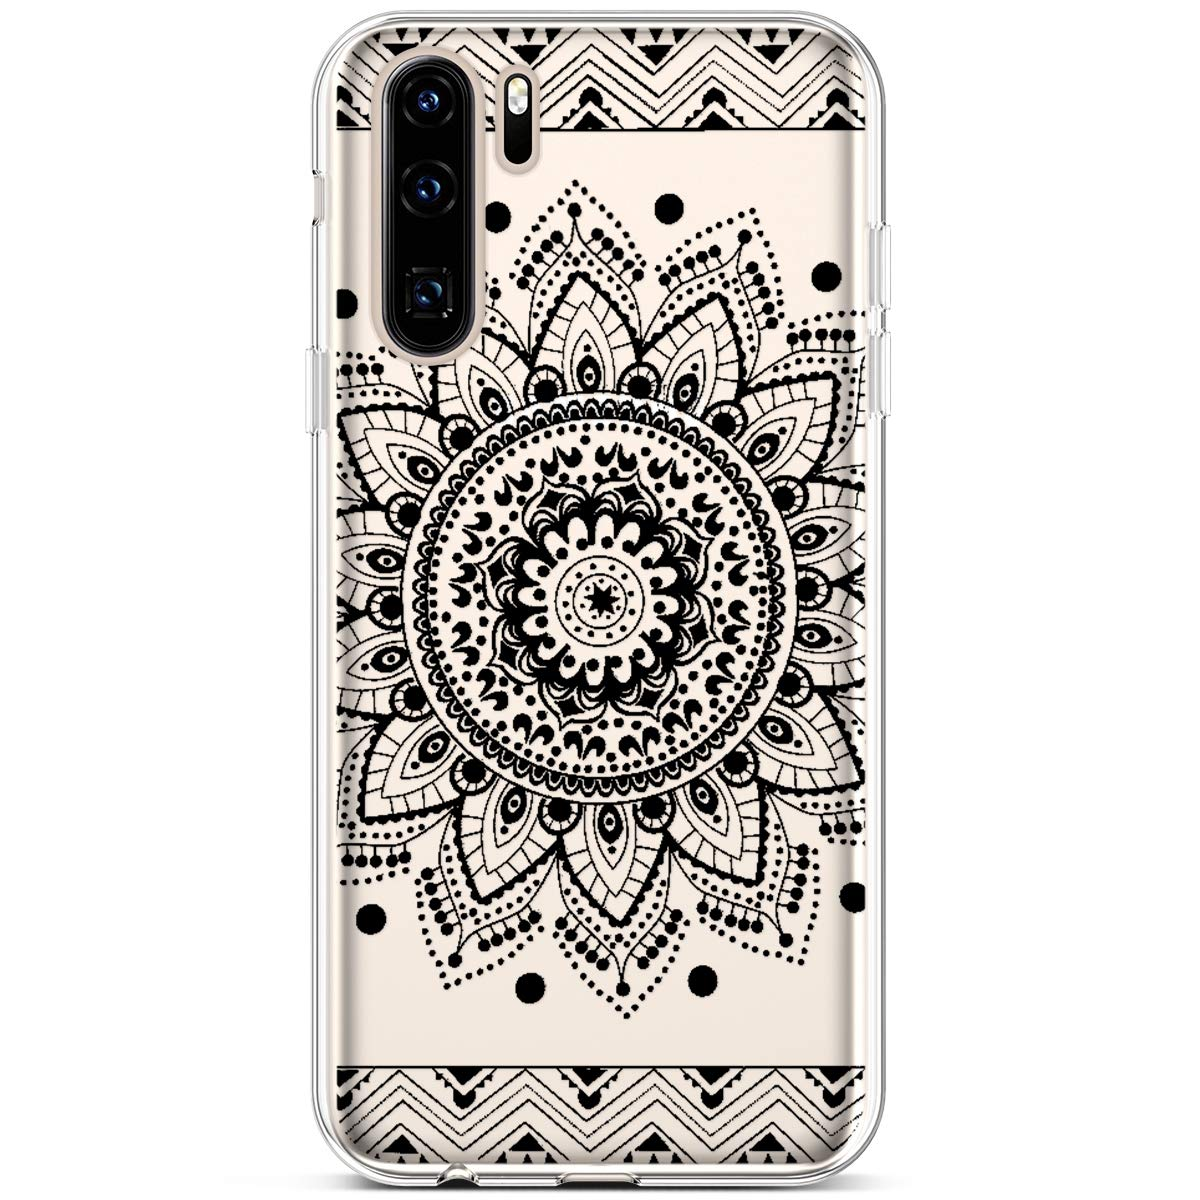 PHEZEN Huawei P30 Pro Case,Slim Shockproof Cute Amusing Whimsical Design Crystal Clear TPU Case Ultra Thin Soft Silicone Rubber Cover Bumper Phone Case for Huawei P30 Pro Peach Blossom